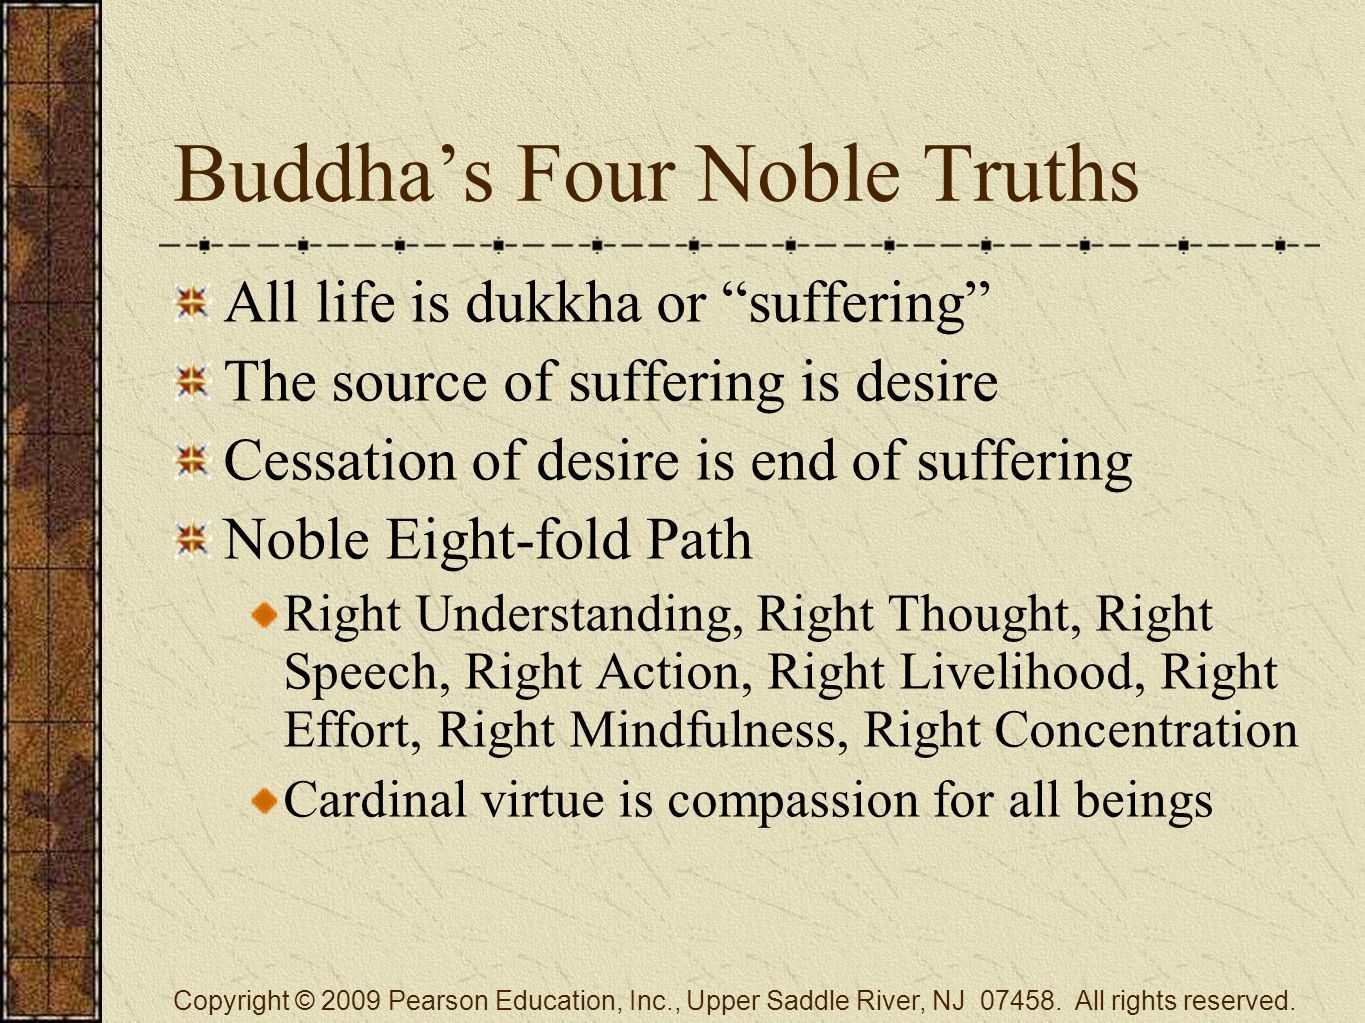 Buddha's Four Noble Truths All life is dukkha or suffering The source of suffering is desire Cessation of desire is end of suffering Noble Eight-fold Path Right Understanding, Right Thought, Right Speech, Right Action, Right Livelihood, Right Effort, Right Mindfulness, Right Concentration Cardinal virtue is compassion for all beings Copyright © 2009 Pearson Education, Inc., Upper Saddle River, NJ 07458.